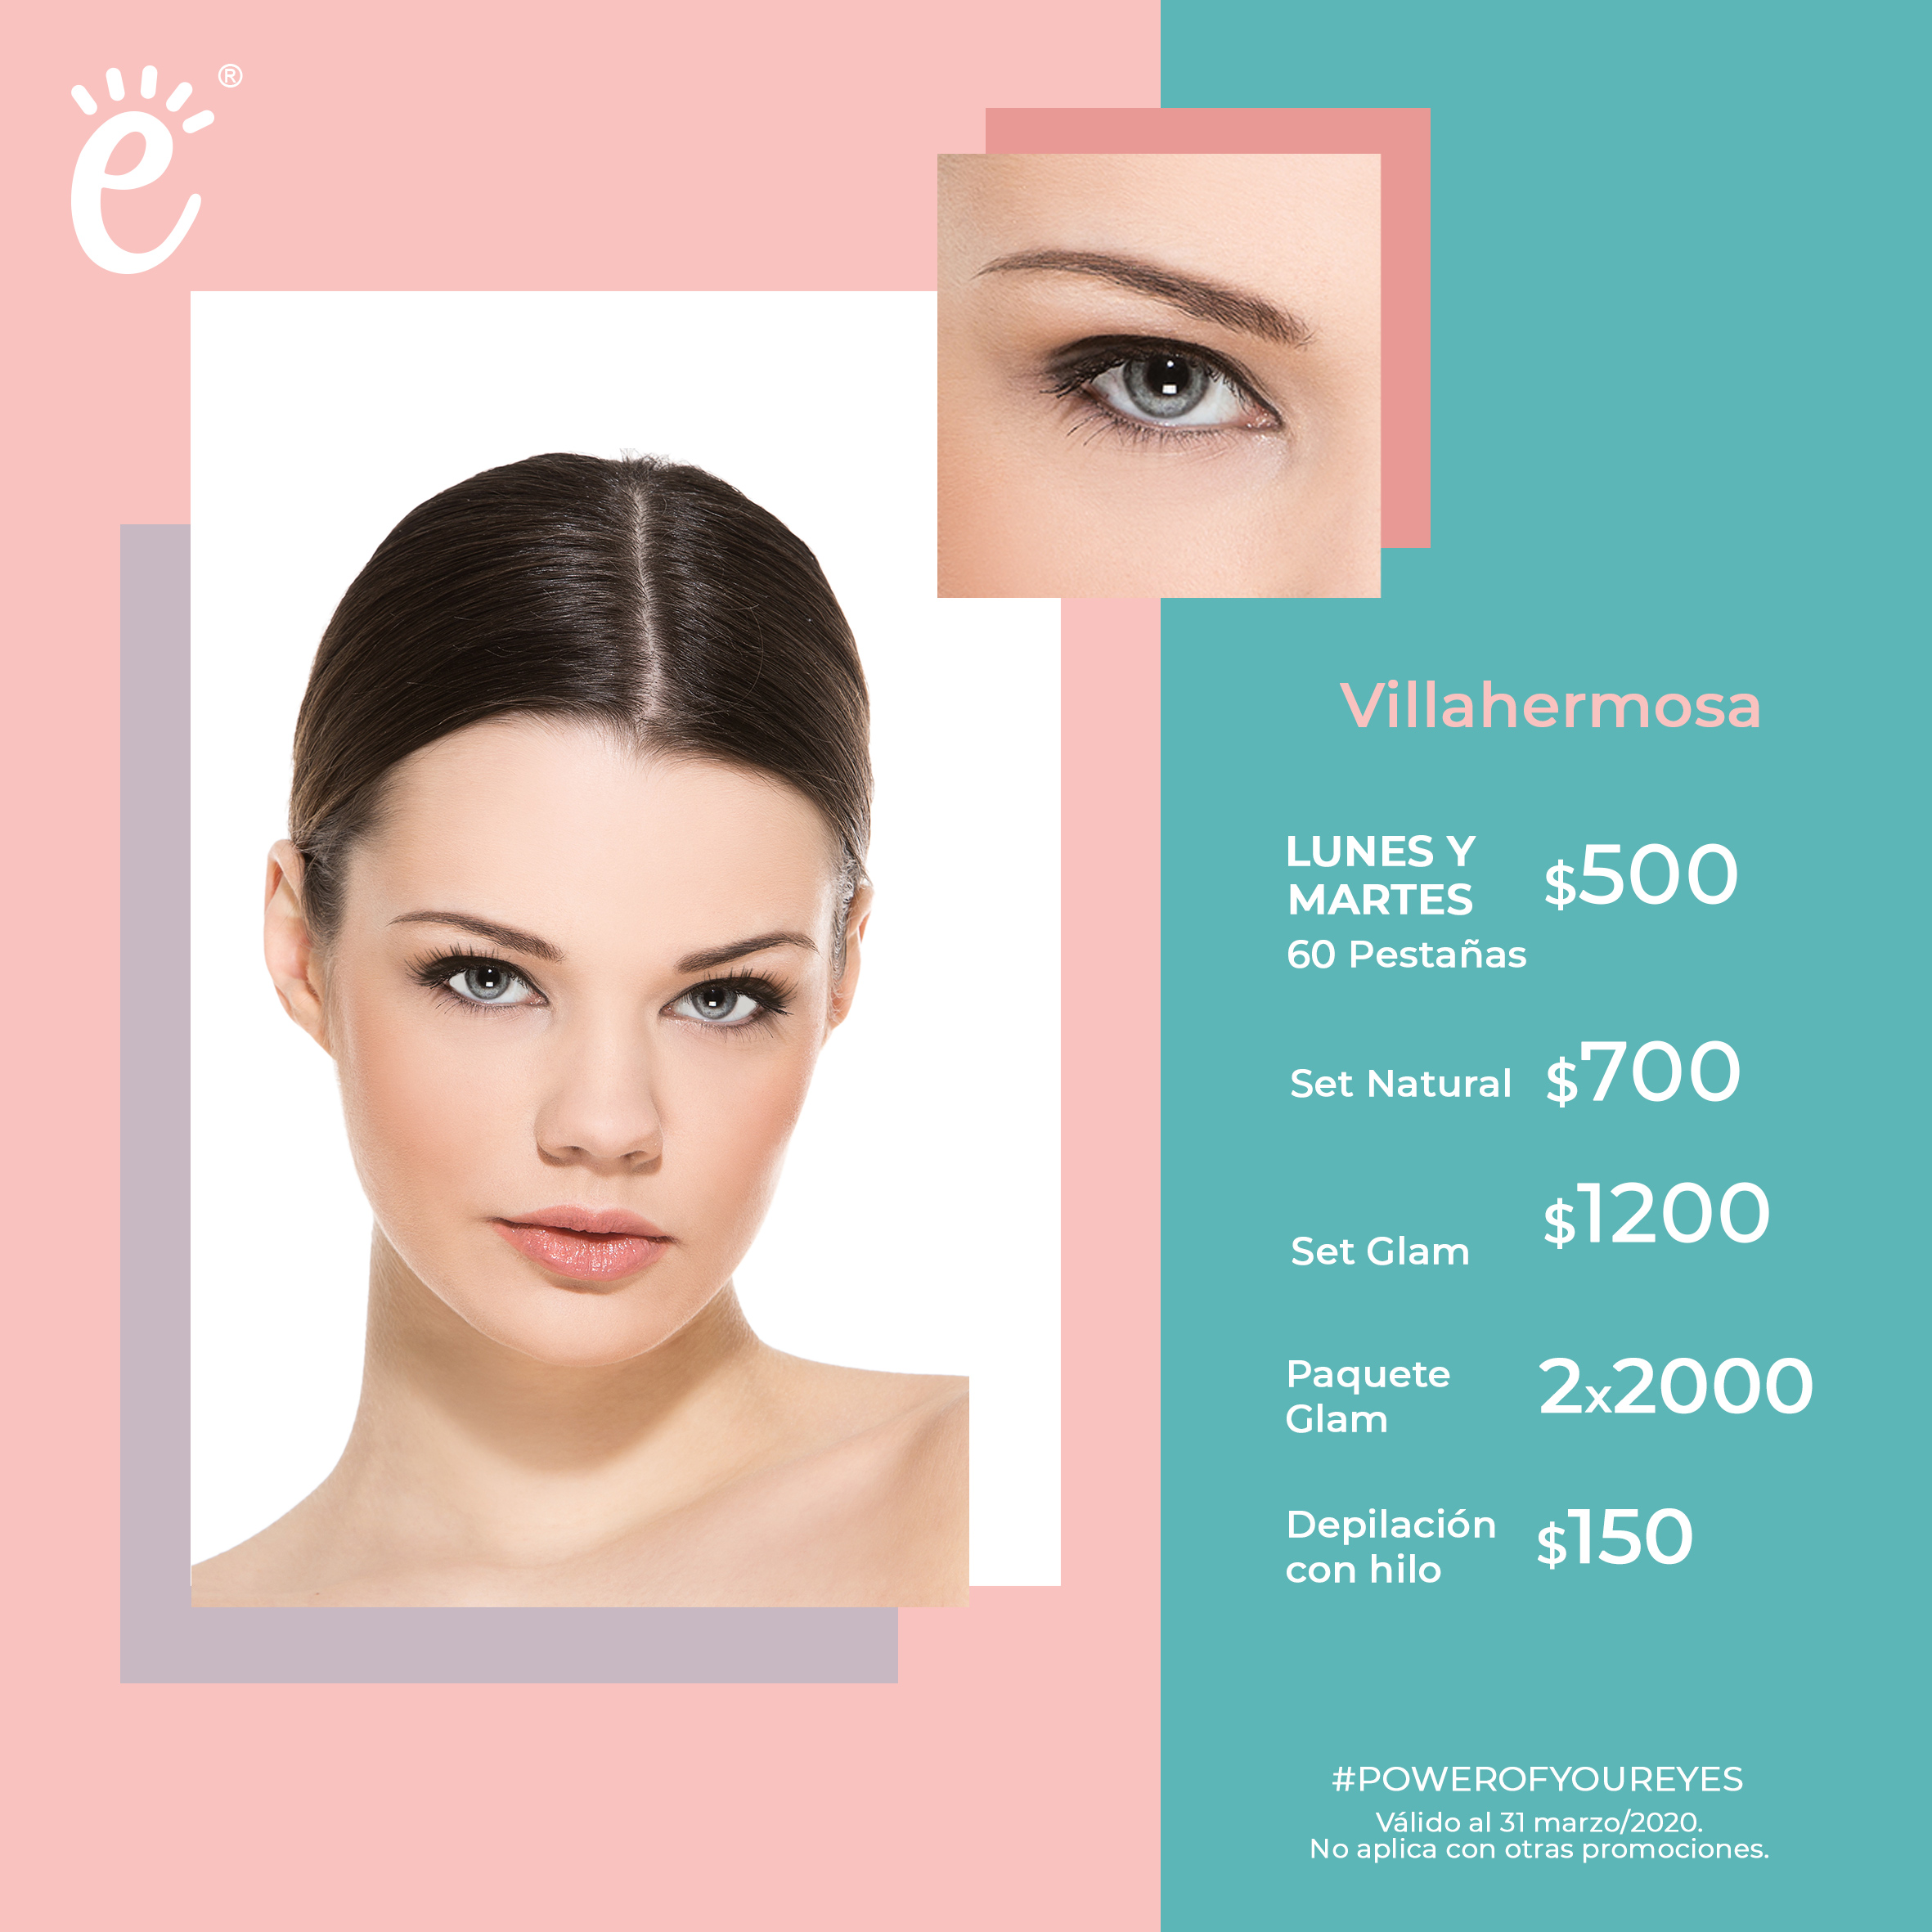 Lunes y Martes: 60 pestañas $500, Full Set Natural  $700; Full Set Glam 1,200; ó Paquete Glam 2x2000